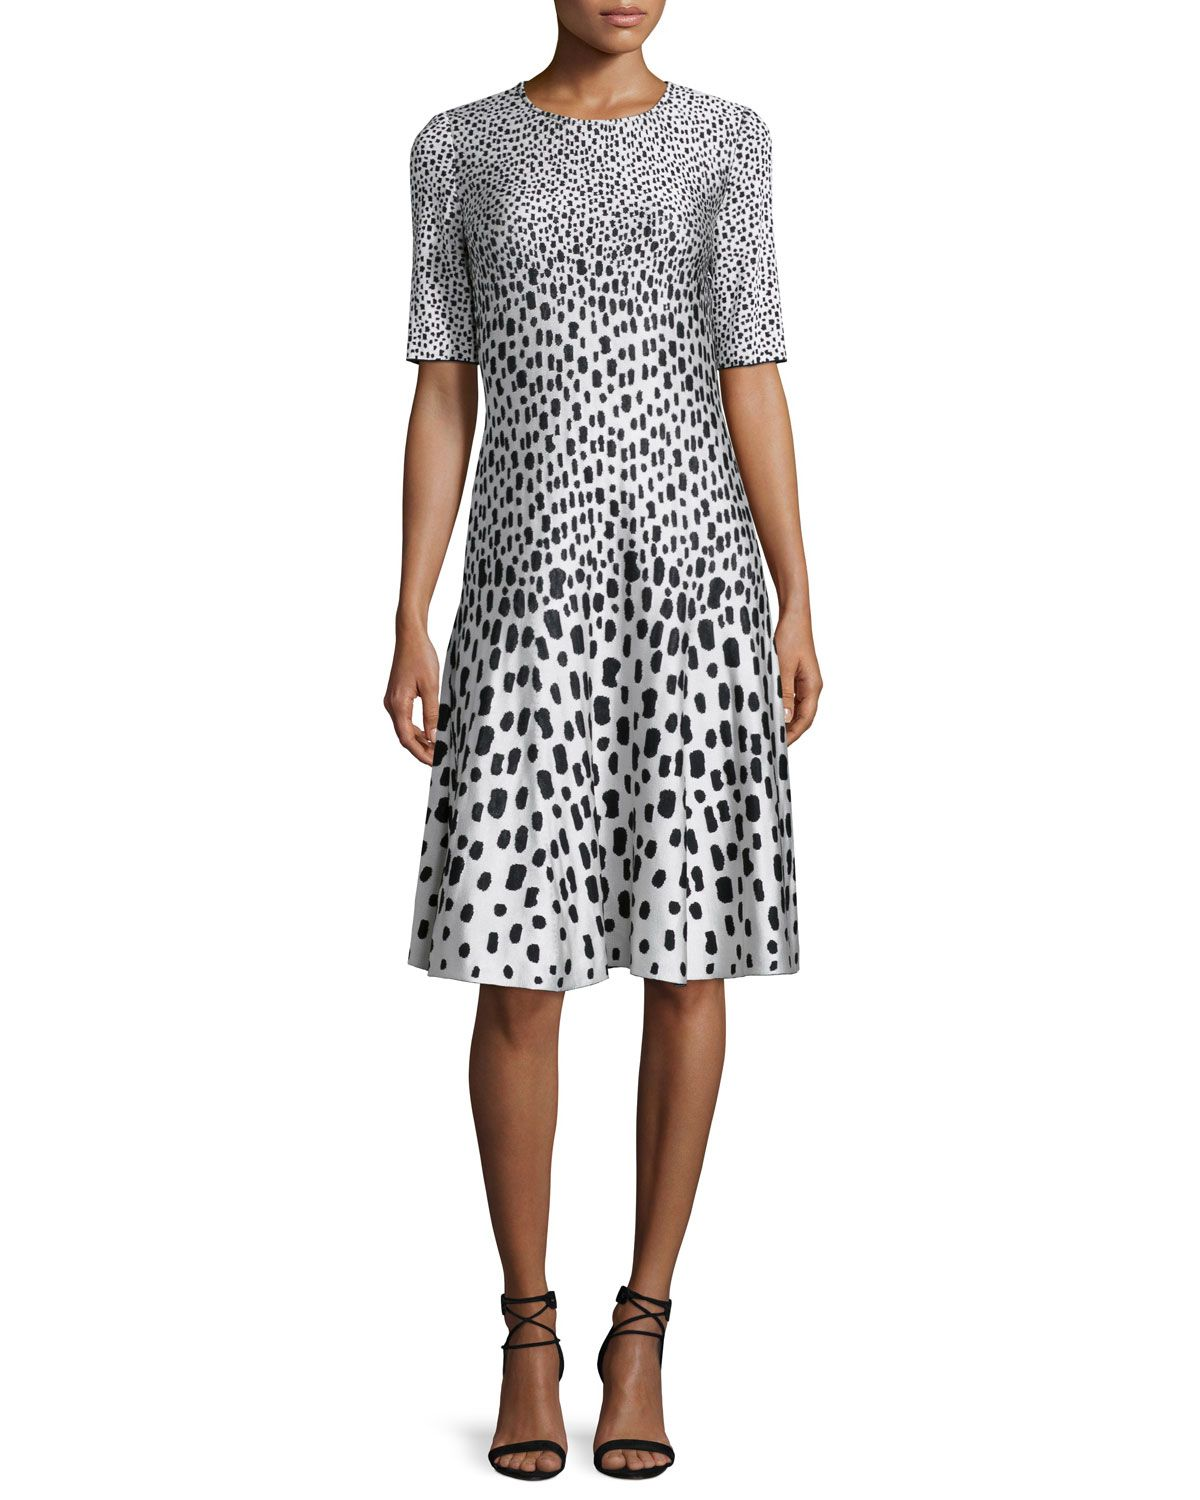 St John Collection -- animal print jacquard flared dress. Made in USA. b482e9c01